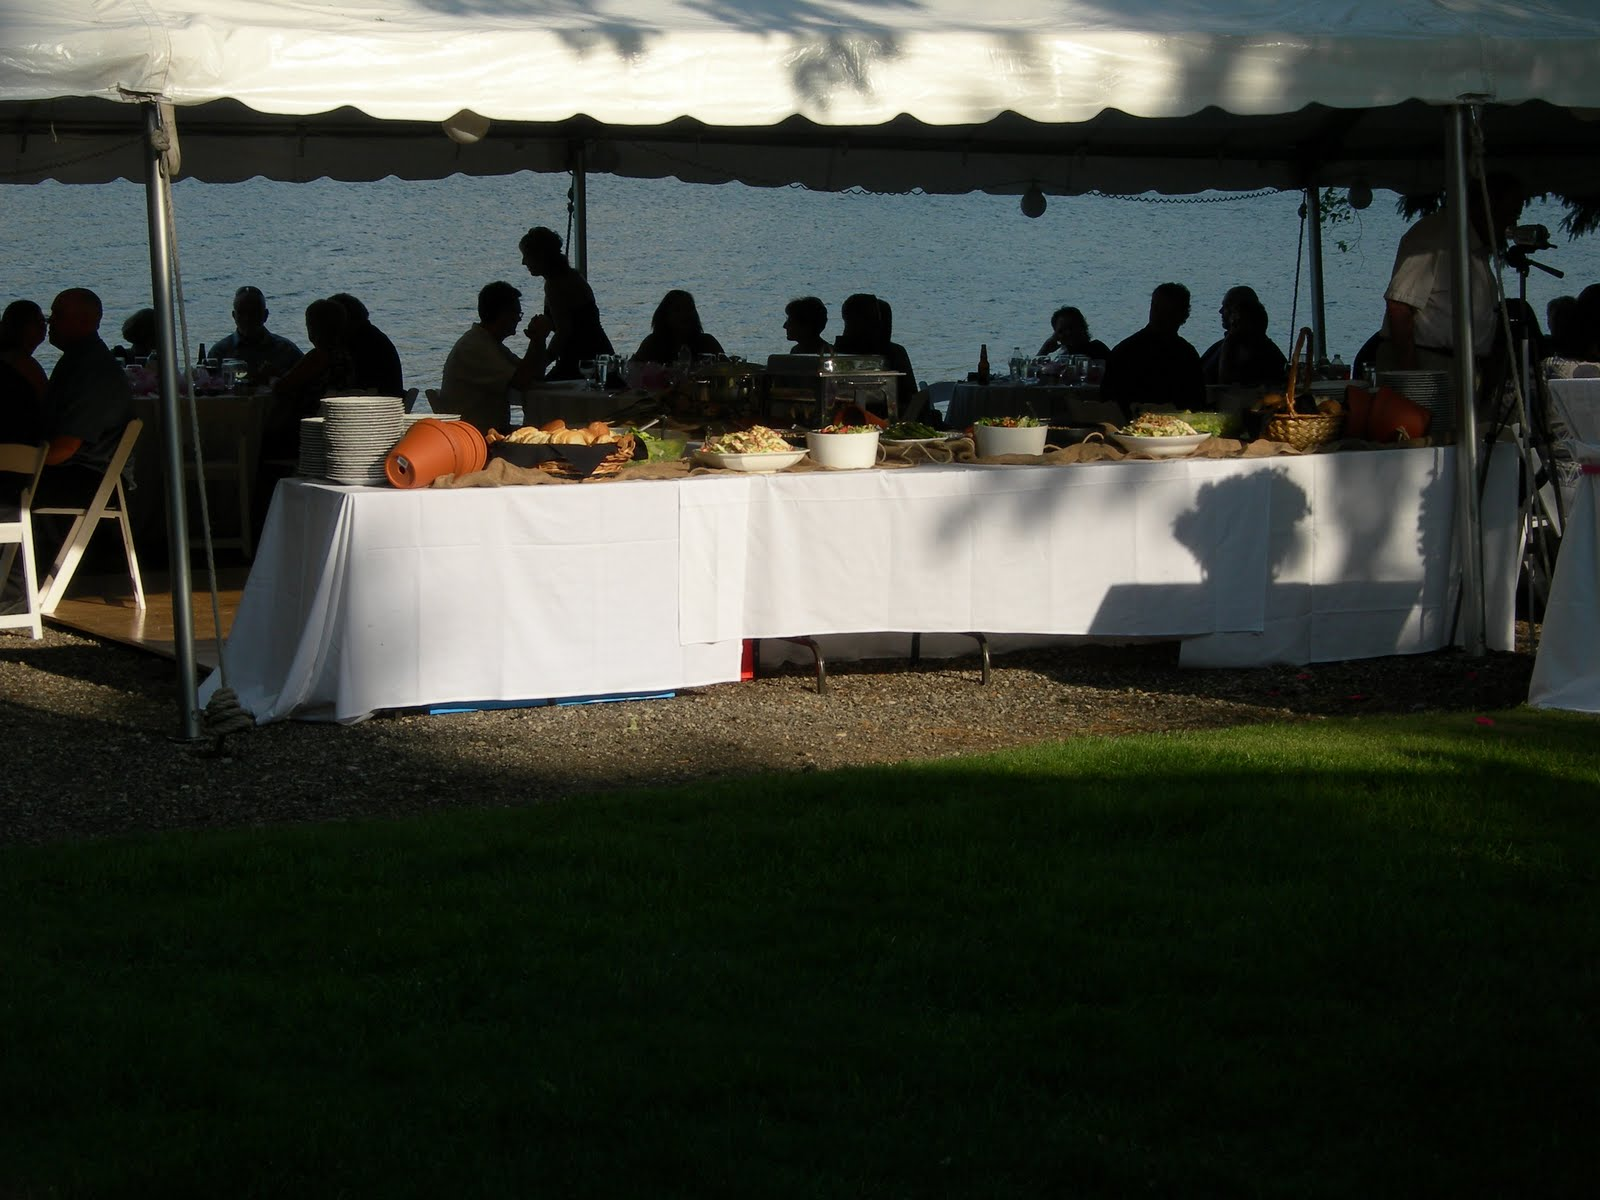 Events At Select Service June Tent Wedding With A Pig Roast Buffet Menu